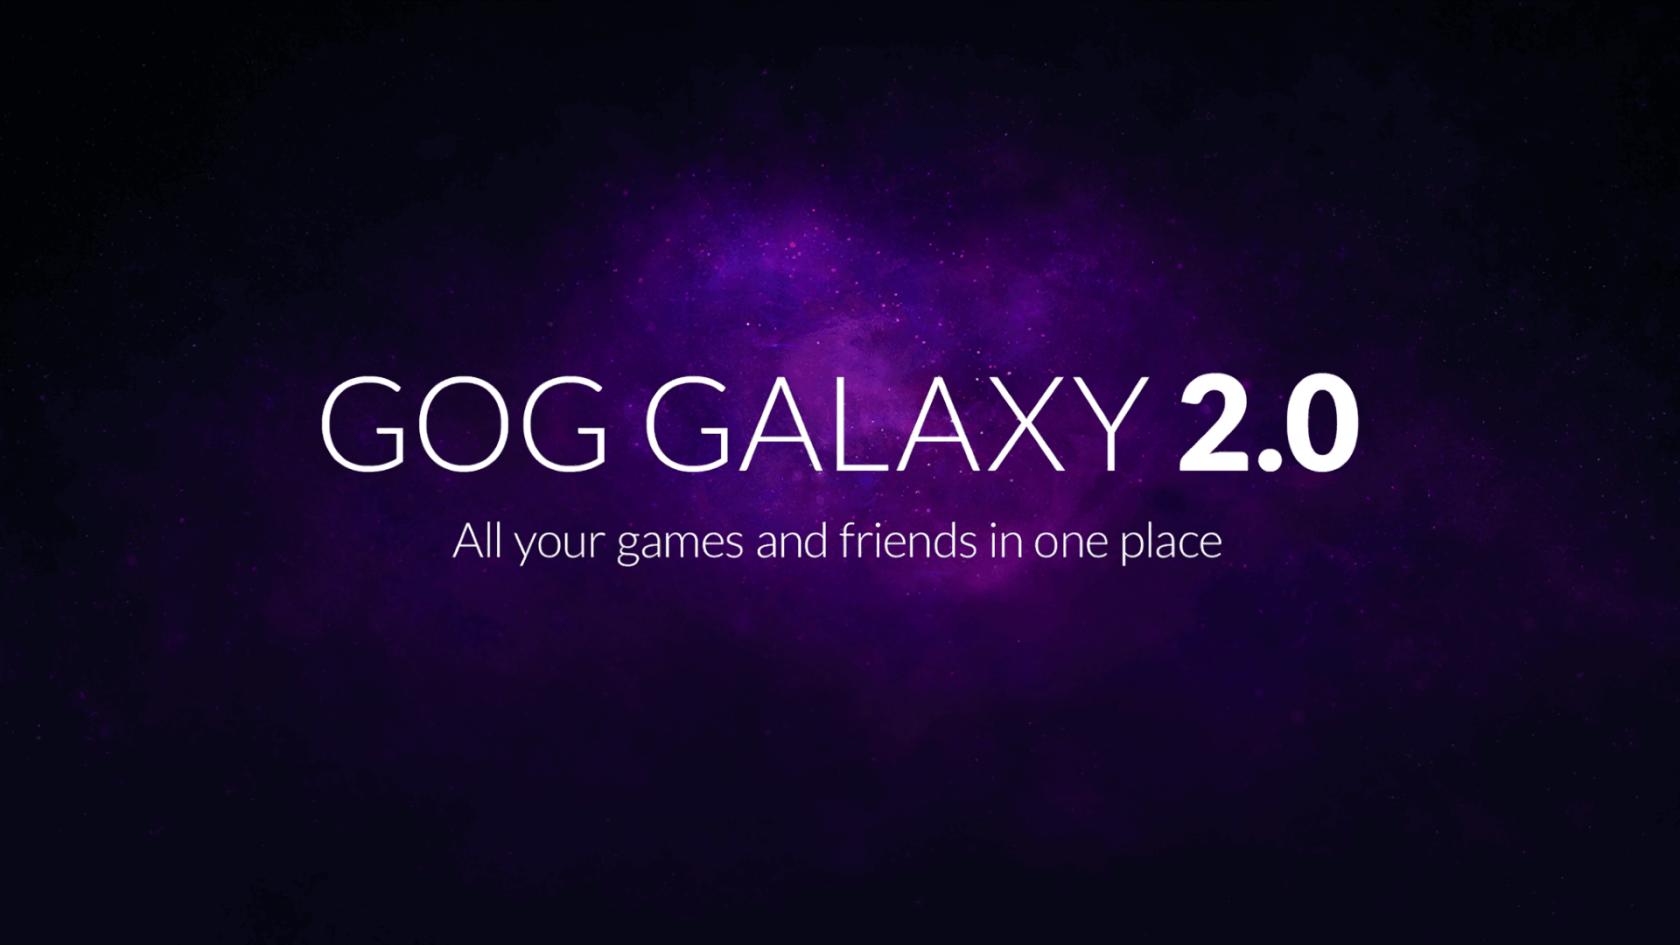 GOG Galaxy 2 0: Breaking down CD Projekt's universal game launcher